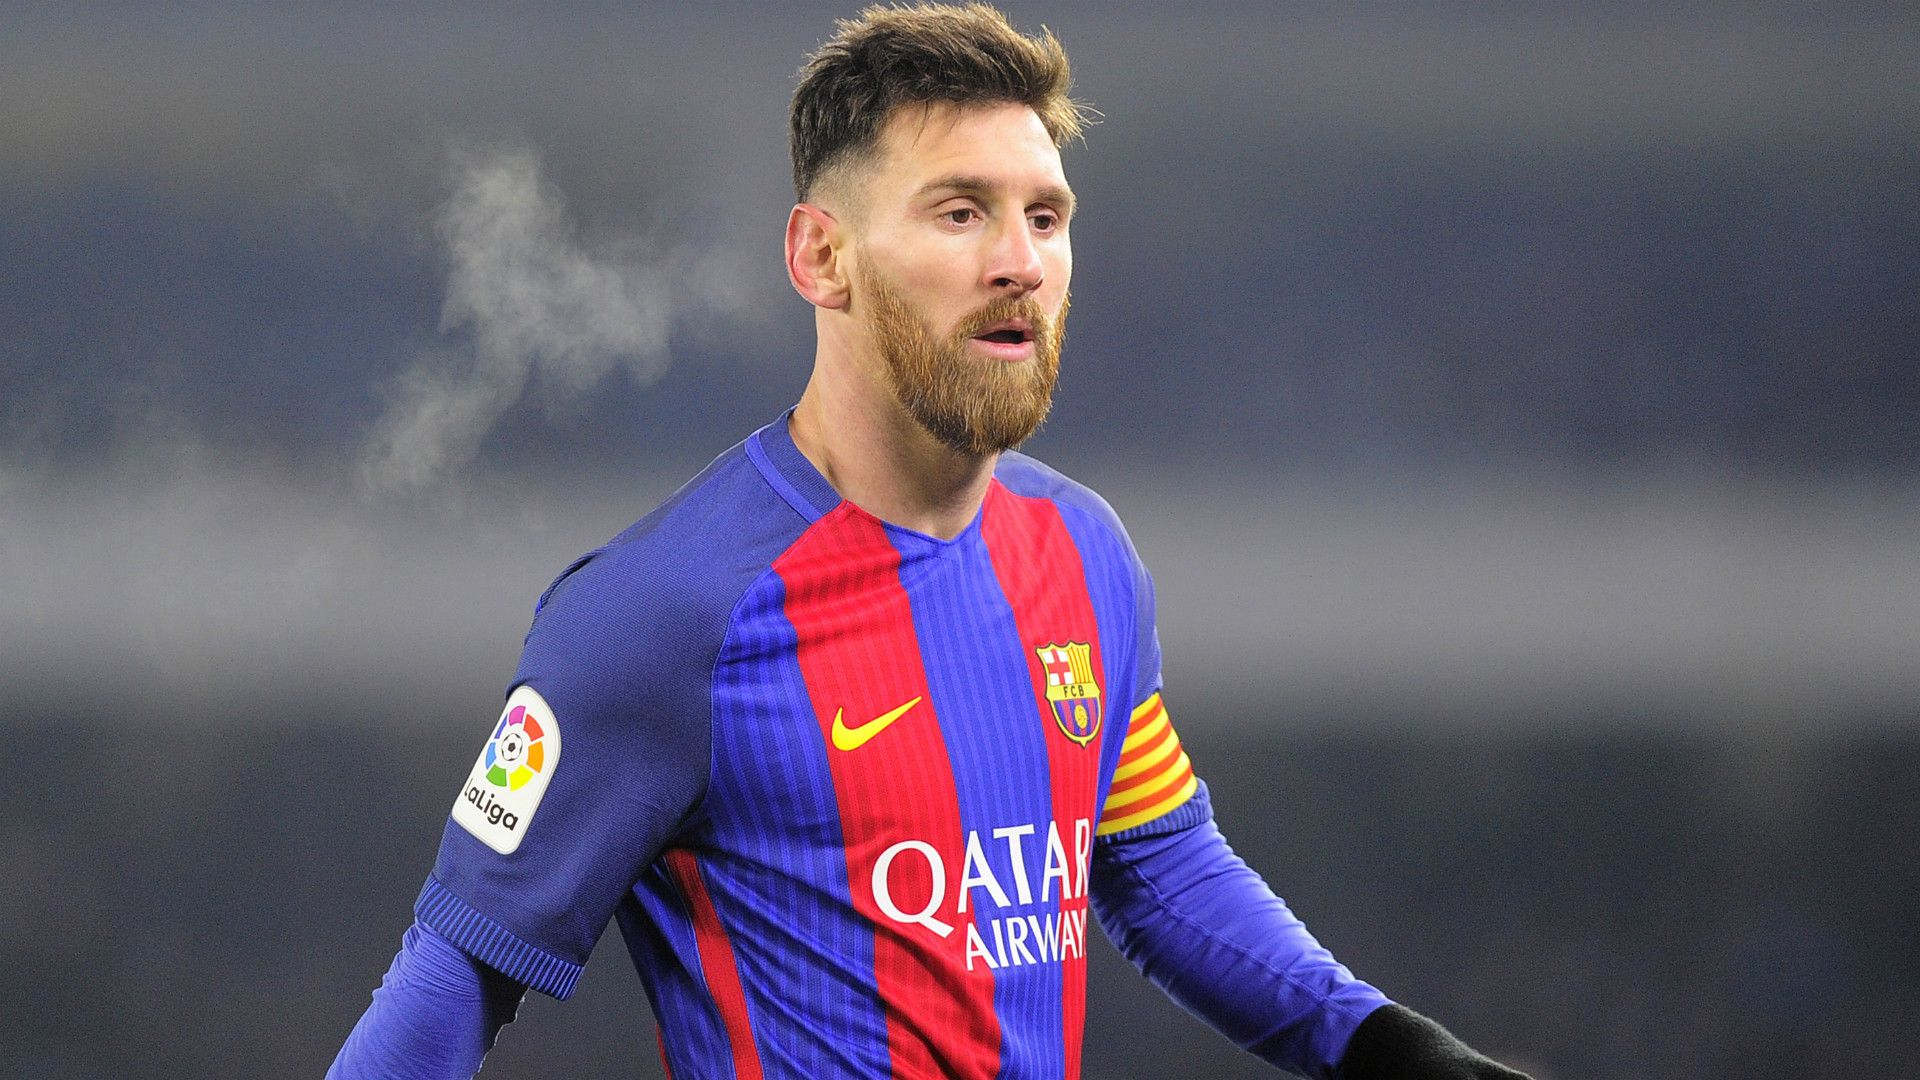 Lionel Messi Top Wallpapers 2017 | 9To5Animations.Com